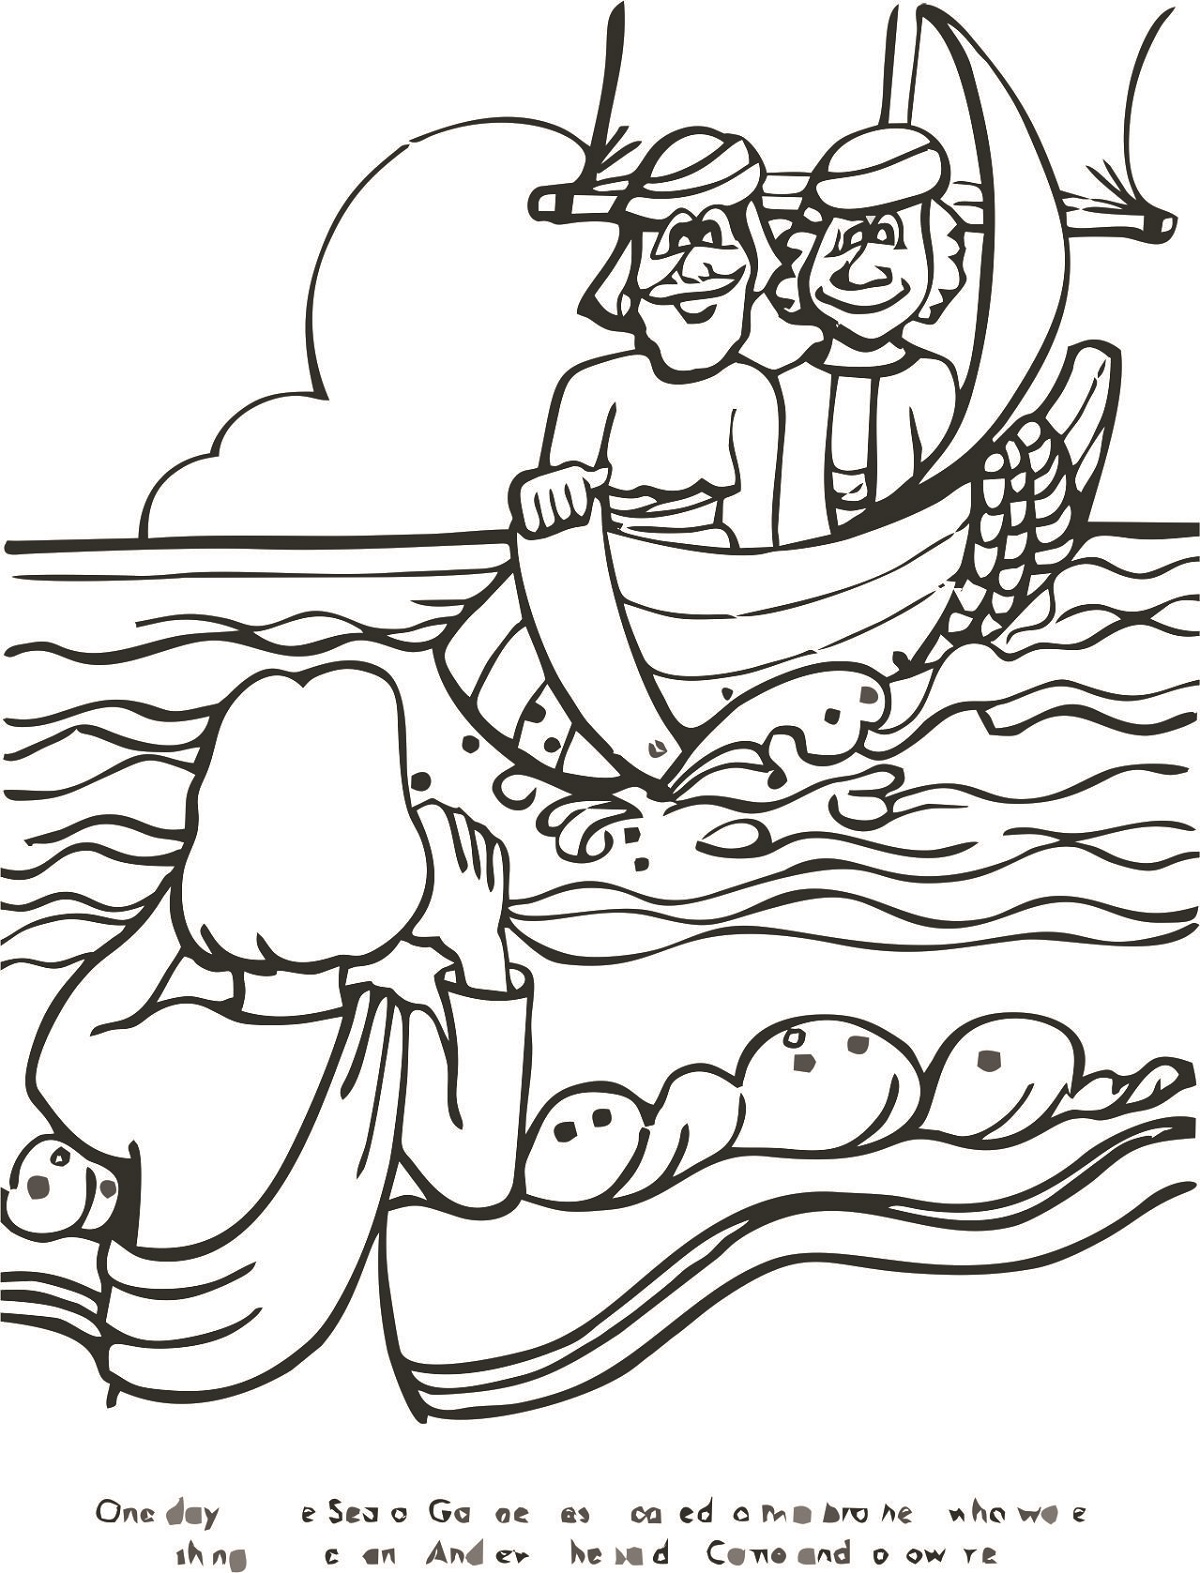 fisher of men coloring pages - photo#2